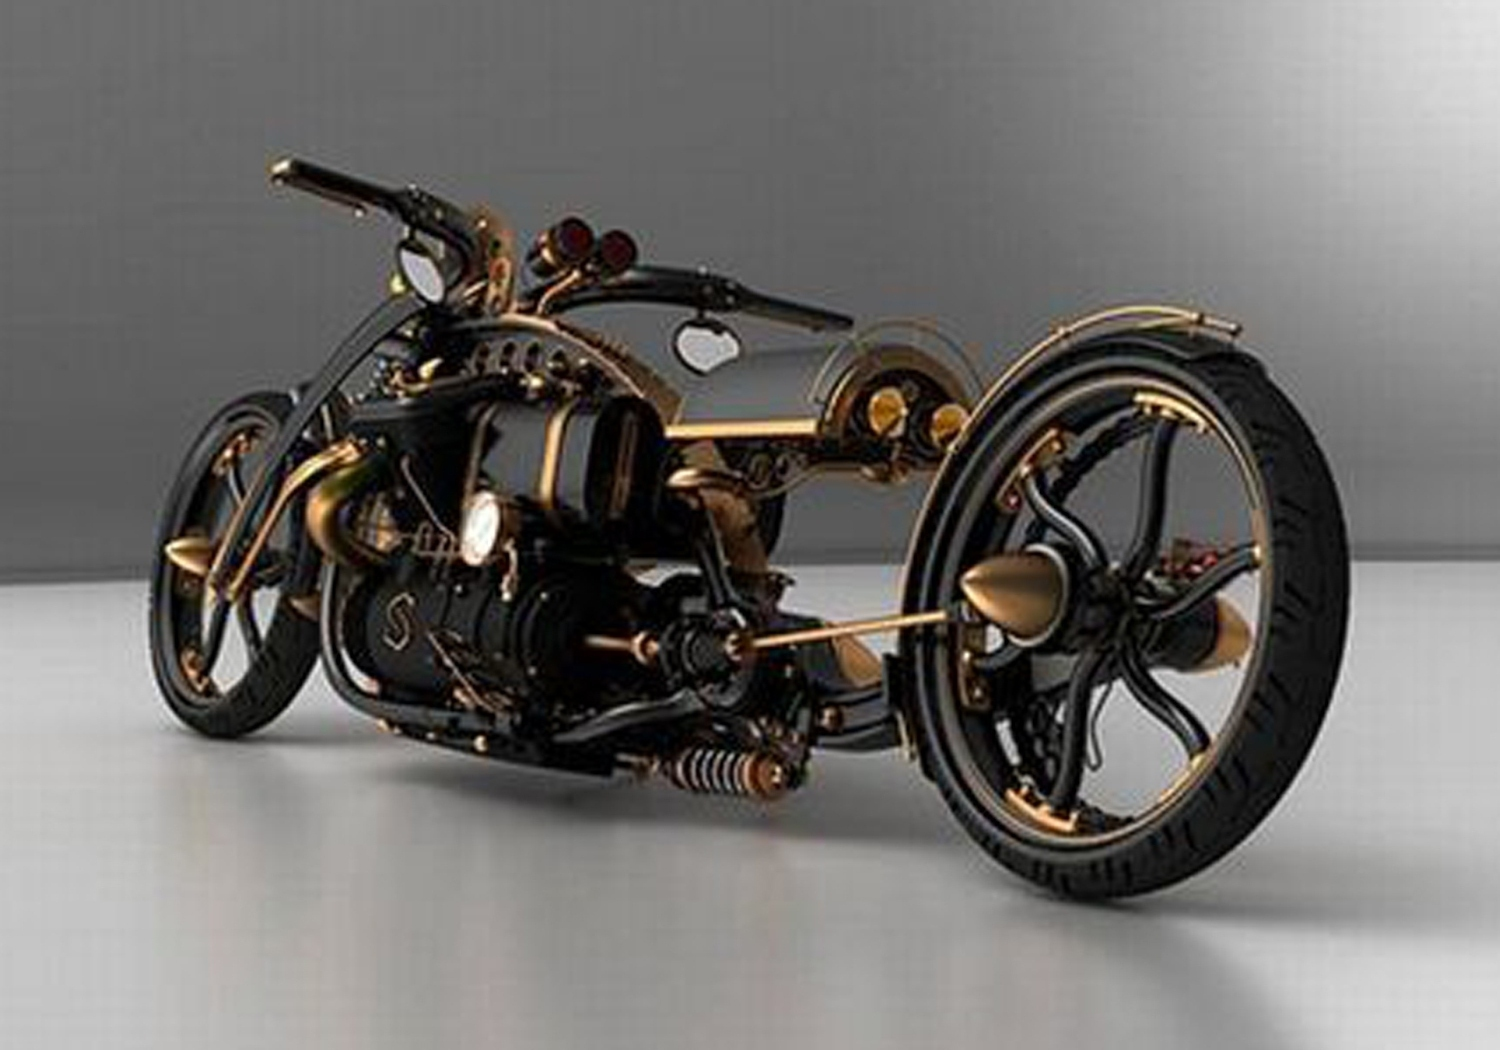 amazing cars and bikes: bikes of the future